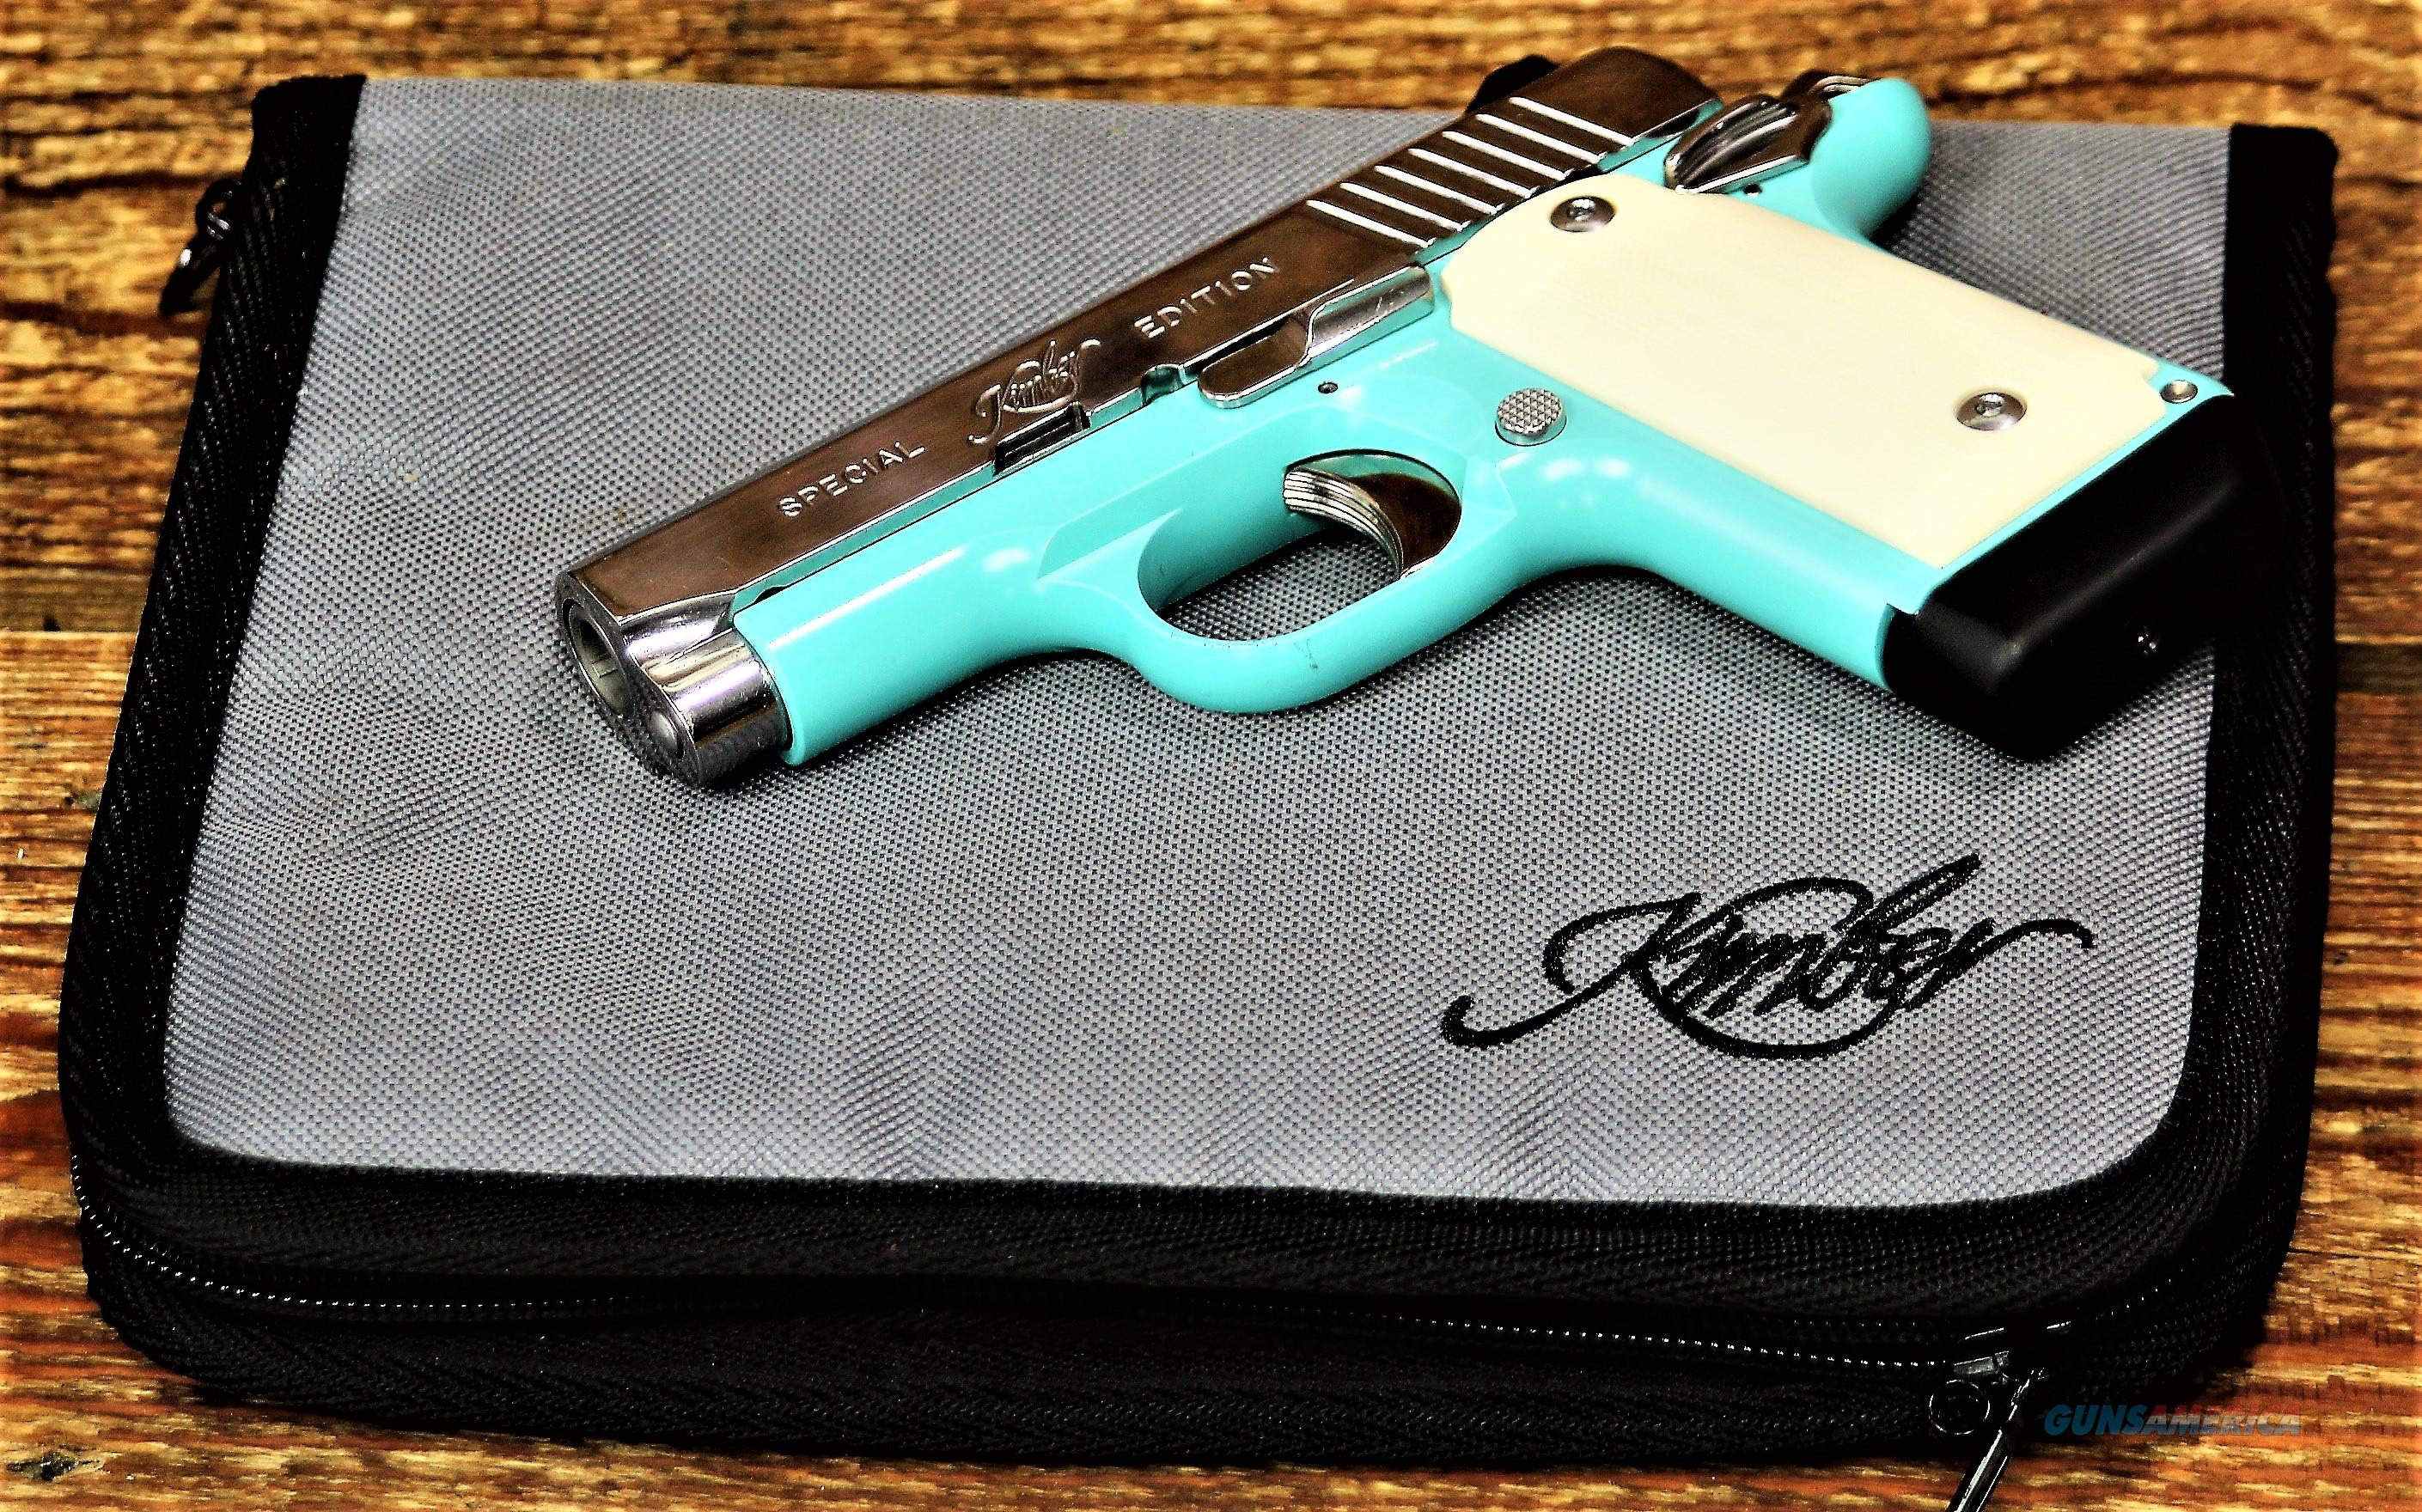 EASY PAY $75 DOWN LAYAWAY 12 MONTHLY  PAYMENTS  KIMBER Concealed & Carry  Micro 9 CDP is a great compact 9mm  BelAir 9MM BLUE Bel Air Ivory Micarta grips  Stainless steel KIM3300110  Guns > Pistols > Kimber of America Pistols > Micro 9